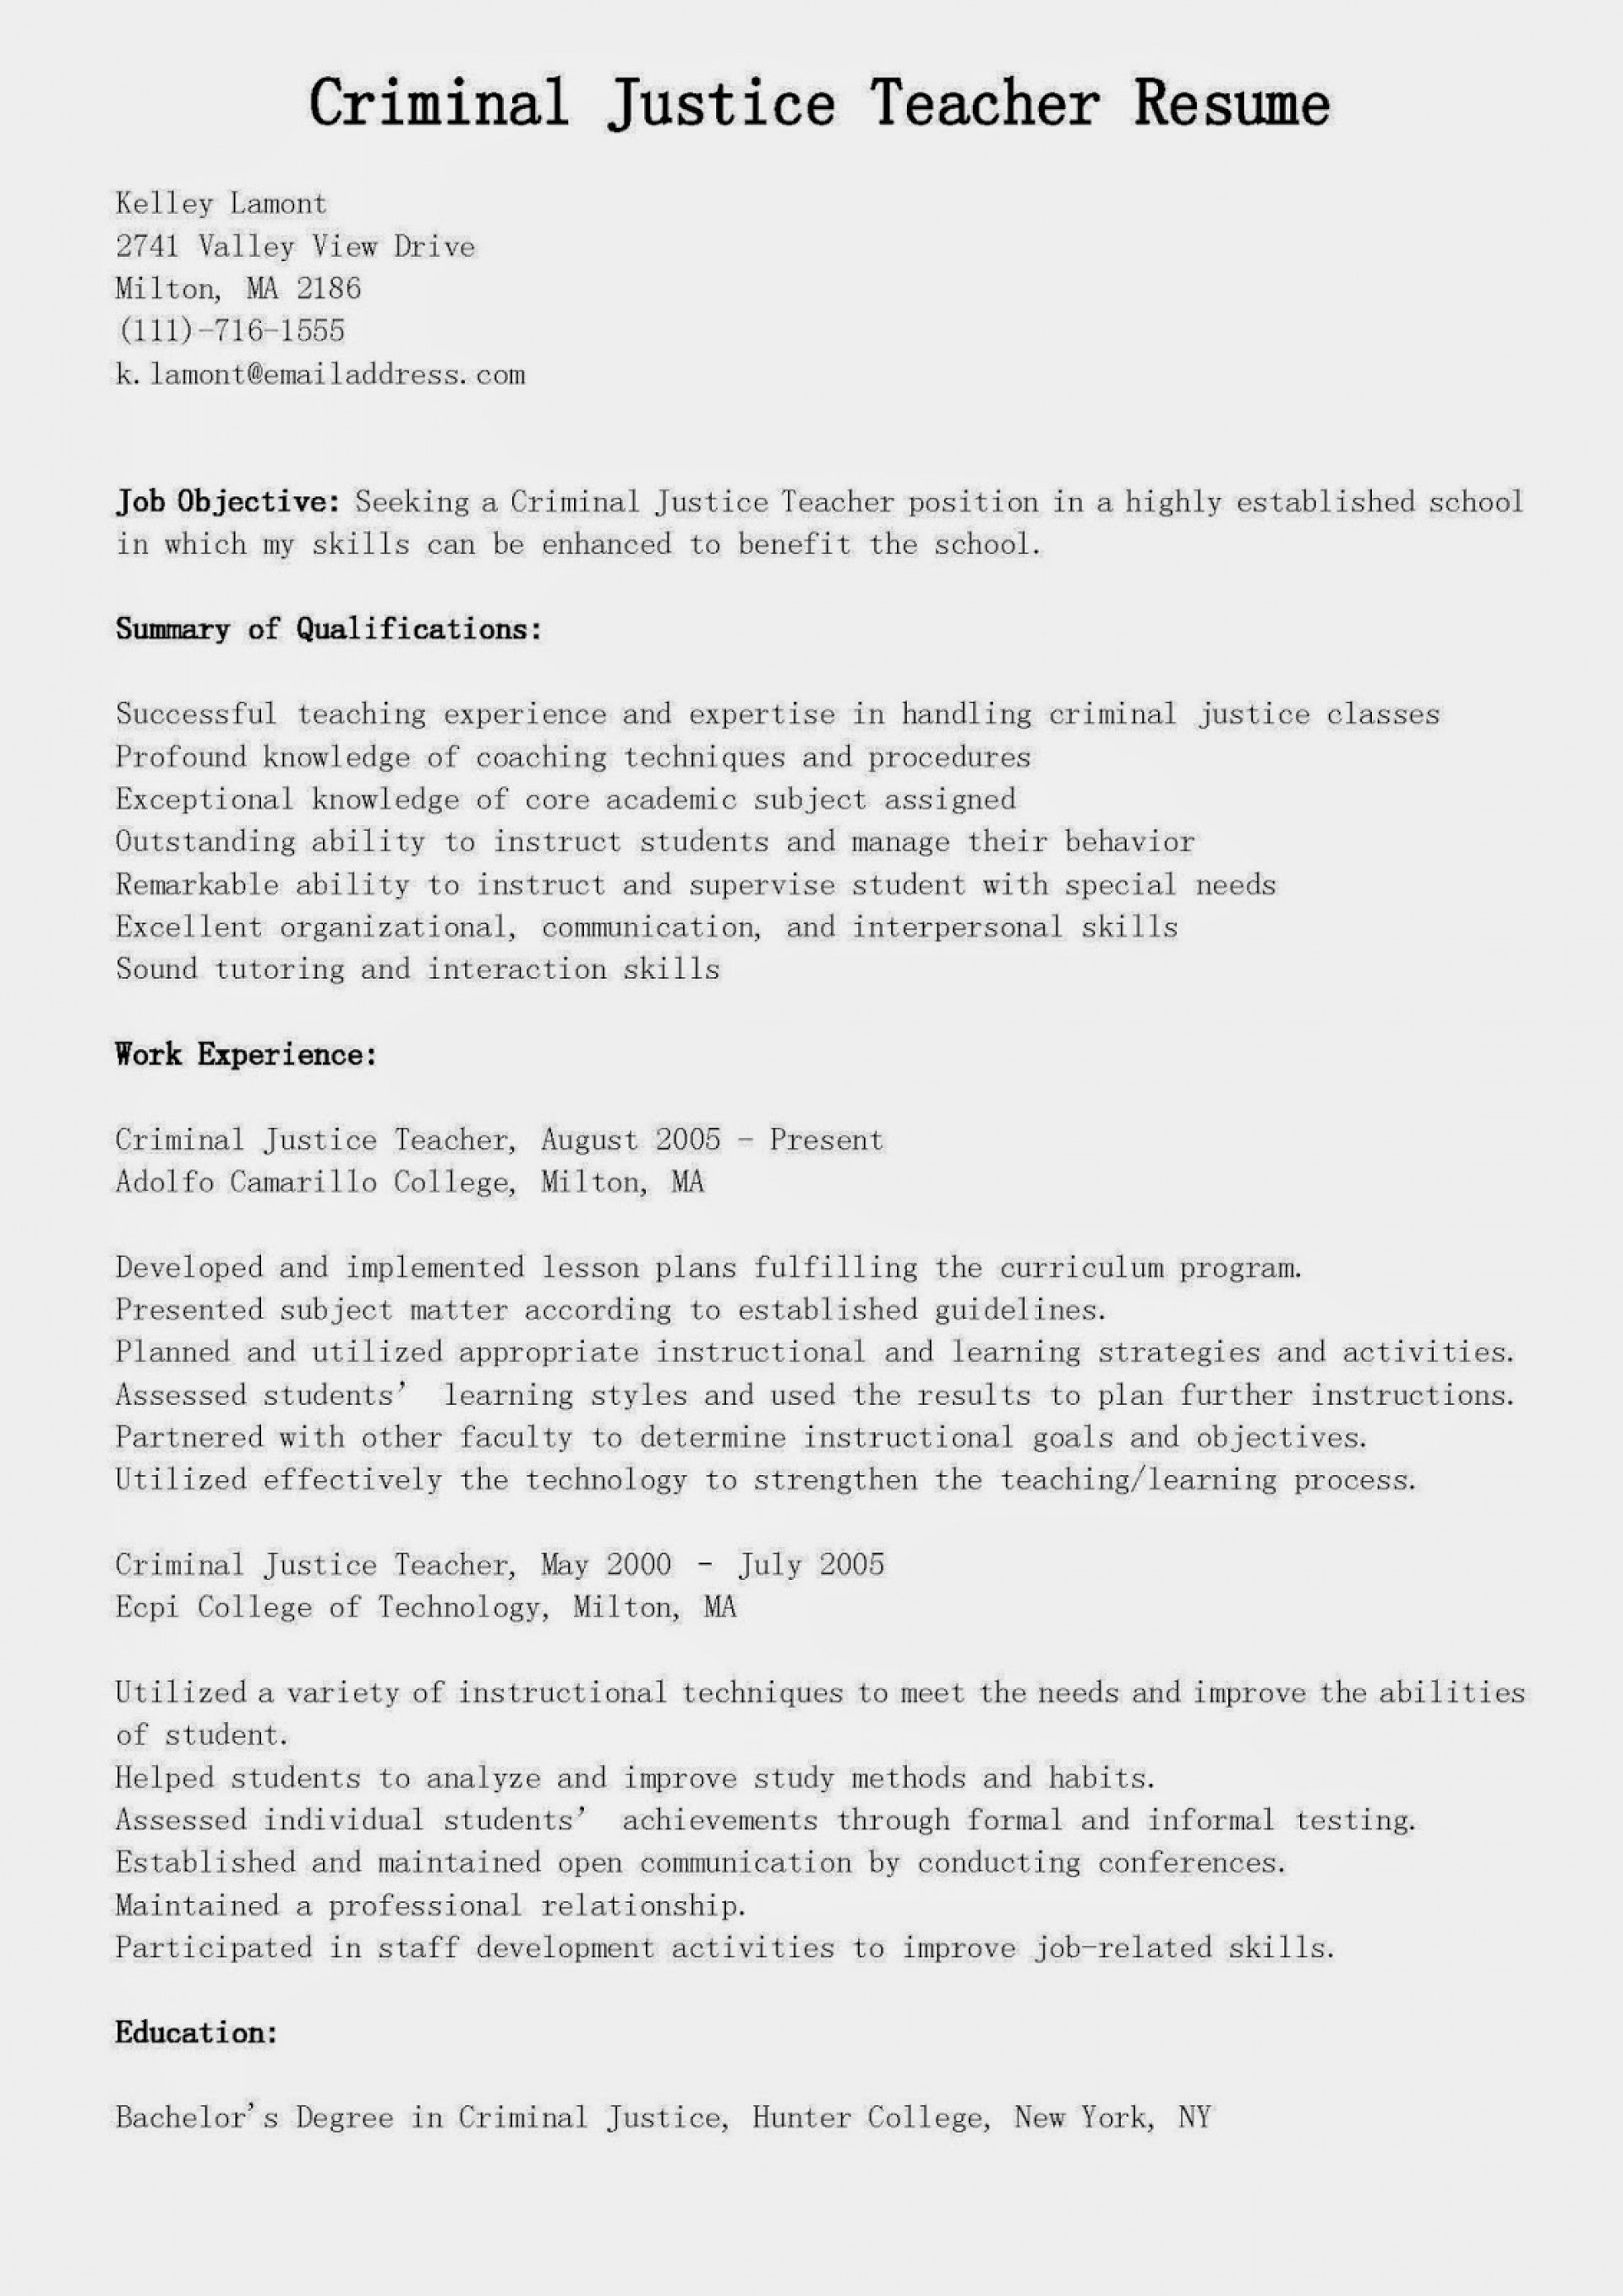 009 Criminaljusticeteacherresume Essay Example Fascinating Justice To Kill A Mockingbird And Injustice Criminal Scholarship Examples Introduction 1920